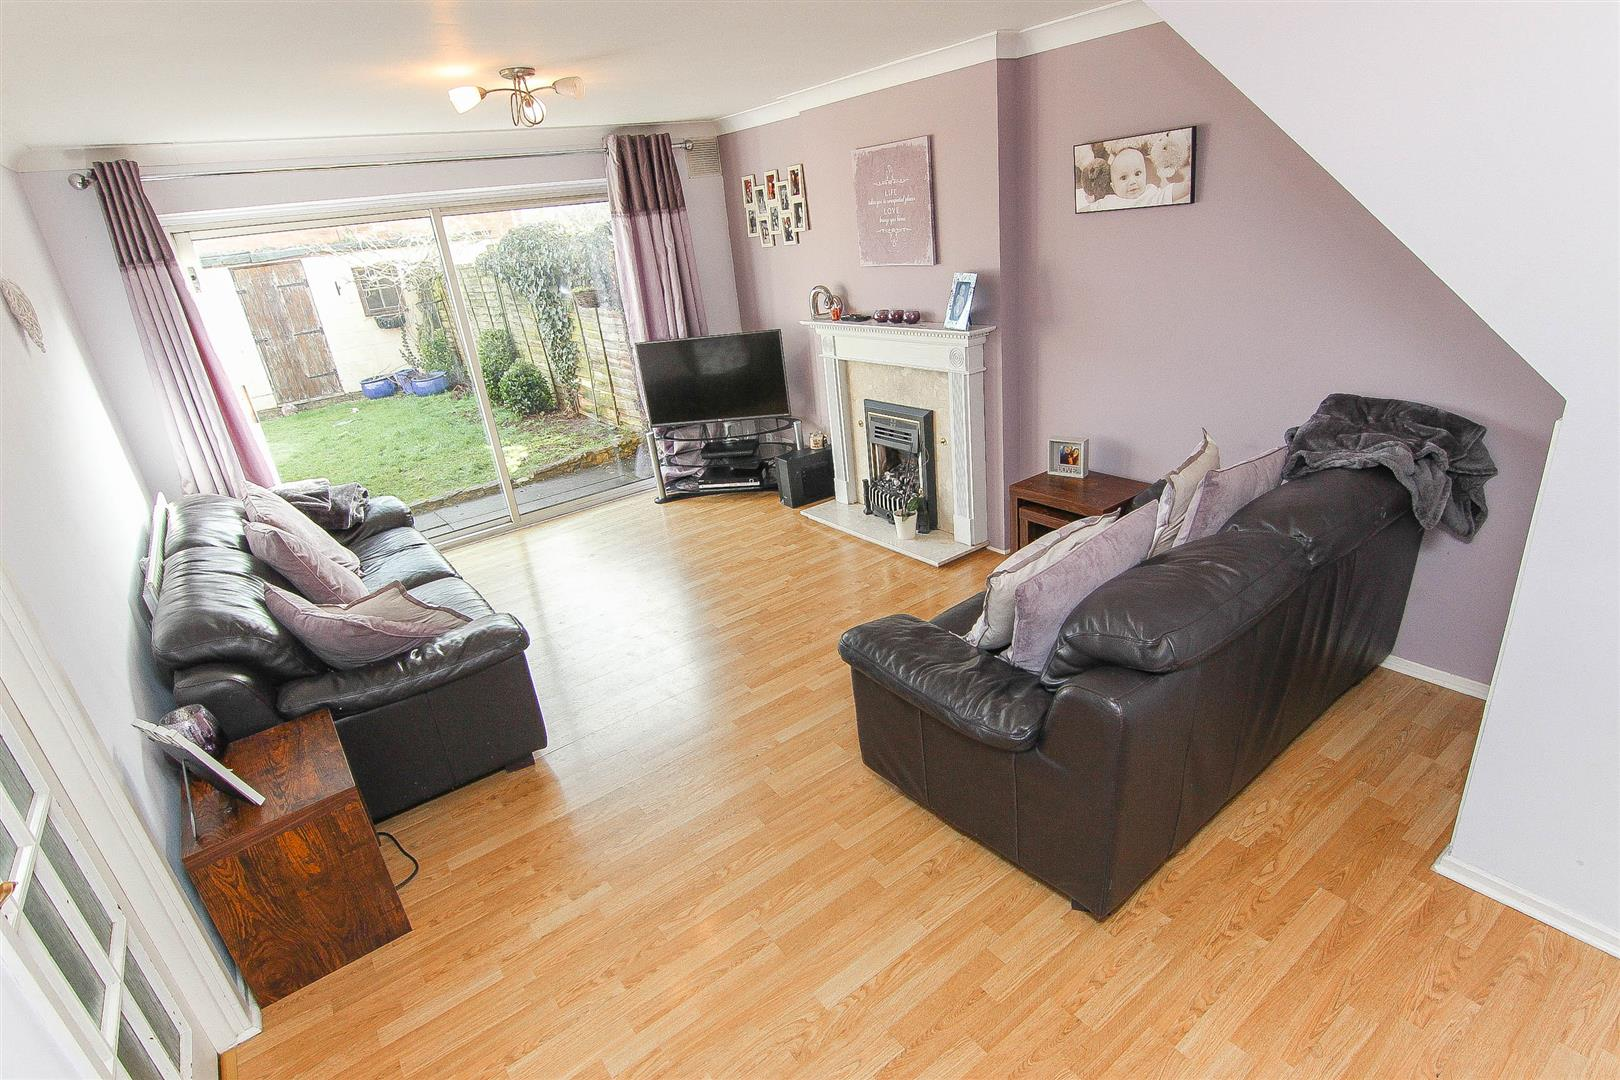 4 Bedroom Semi-Detached House For Sale In Leamington Spa